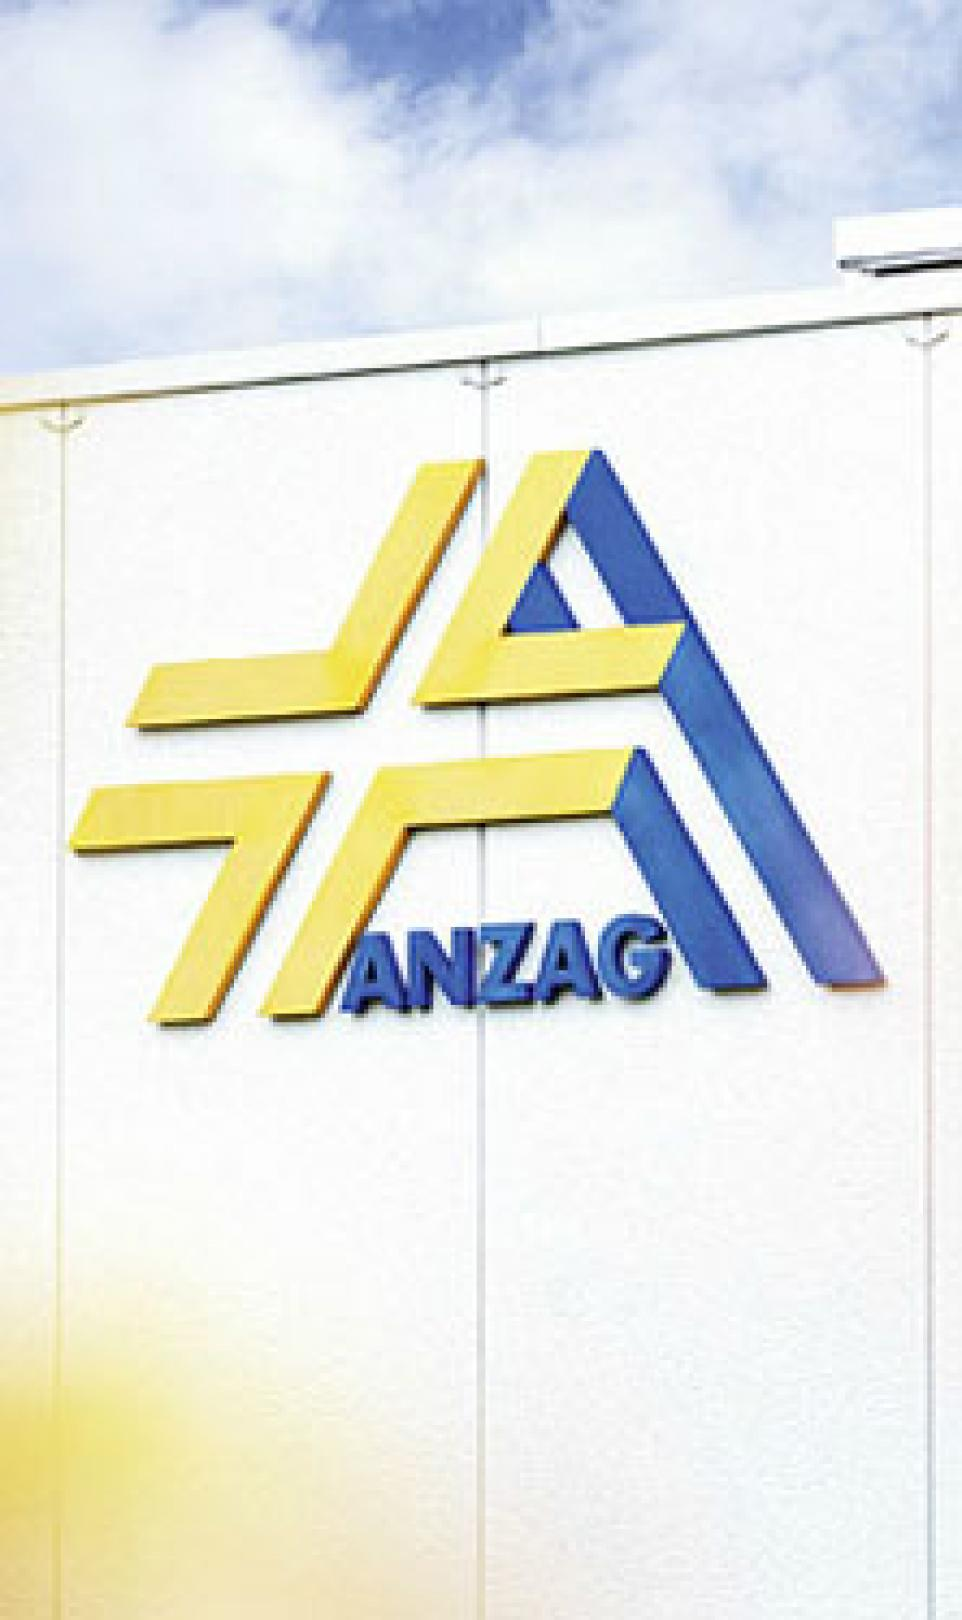 Close-up photograph of the Anzag logo on the headquarters building in Germany